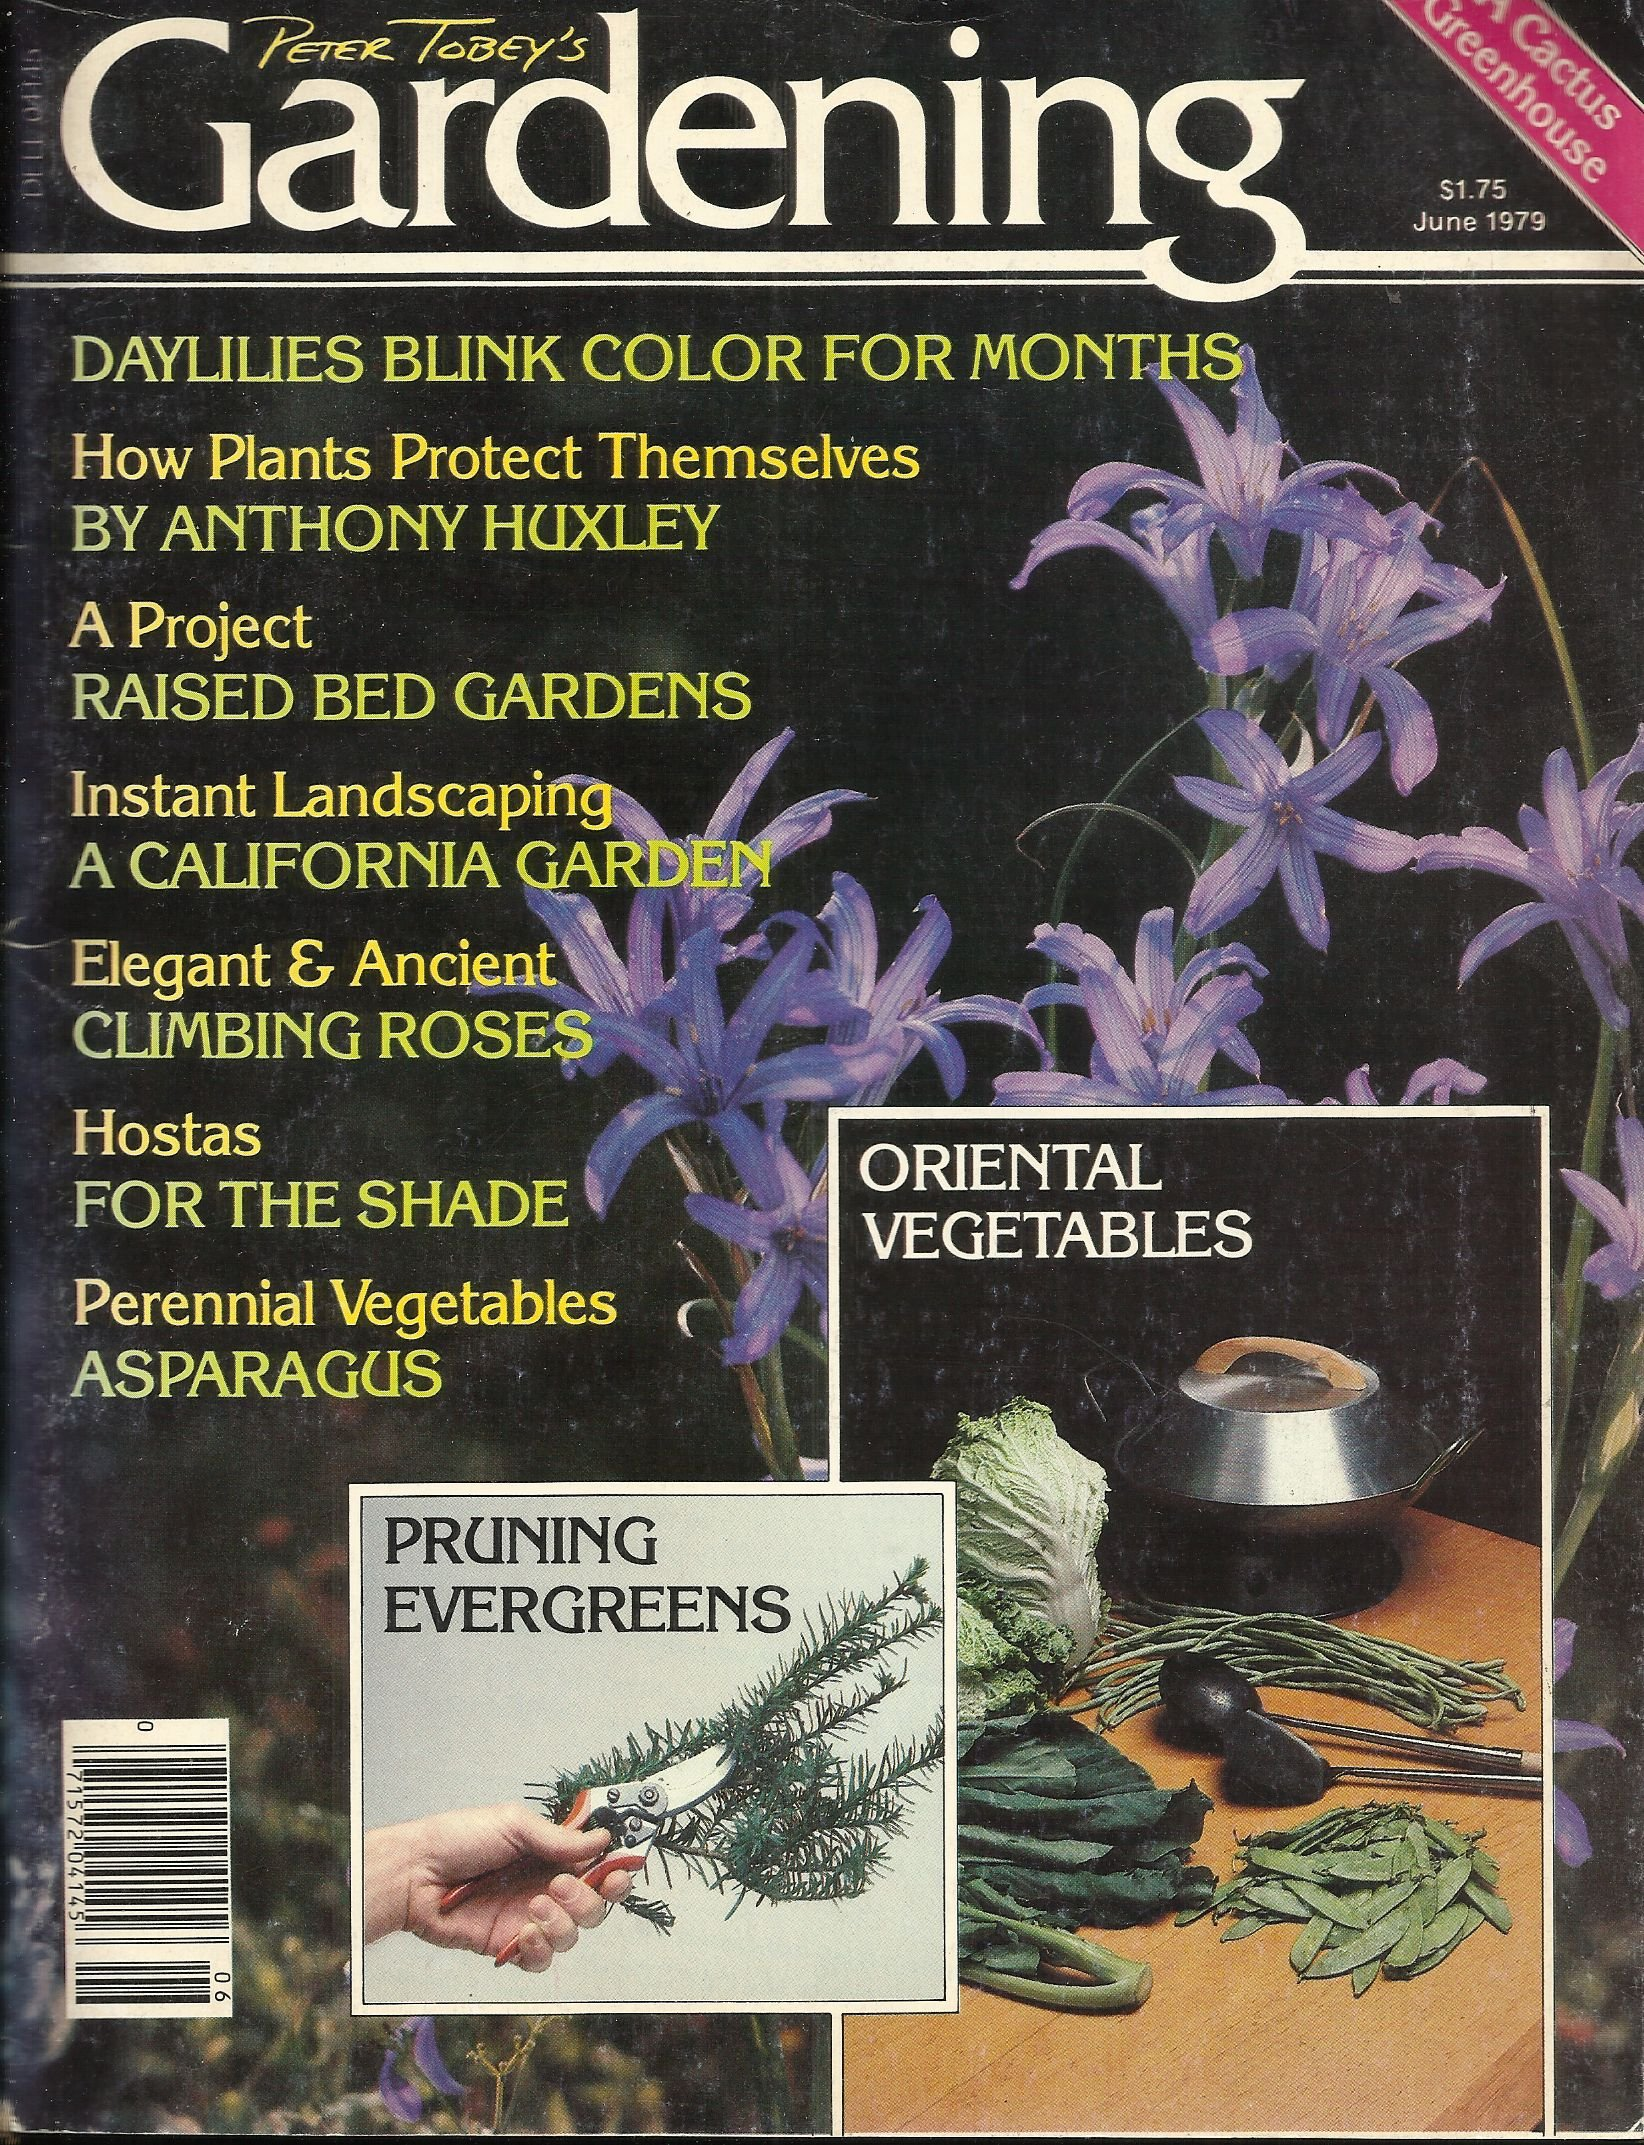 PETER TOBEY'S GARDENING JUNE 1979 (A CACTUS GREENHOUSE ; DAYLILIES BLINK COLOR FOR MONTHS ; HOW PLANTS PROTECT THEMSELVES ; A PROJECT ; ELEGANT & ANCIENT ; HOSTAS ; PERENNIAL VEGETABLES - ASPARAGUS AND MORE